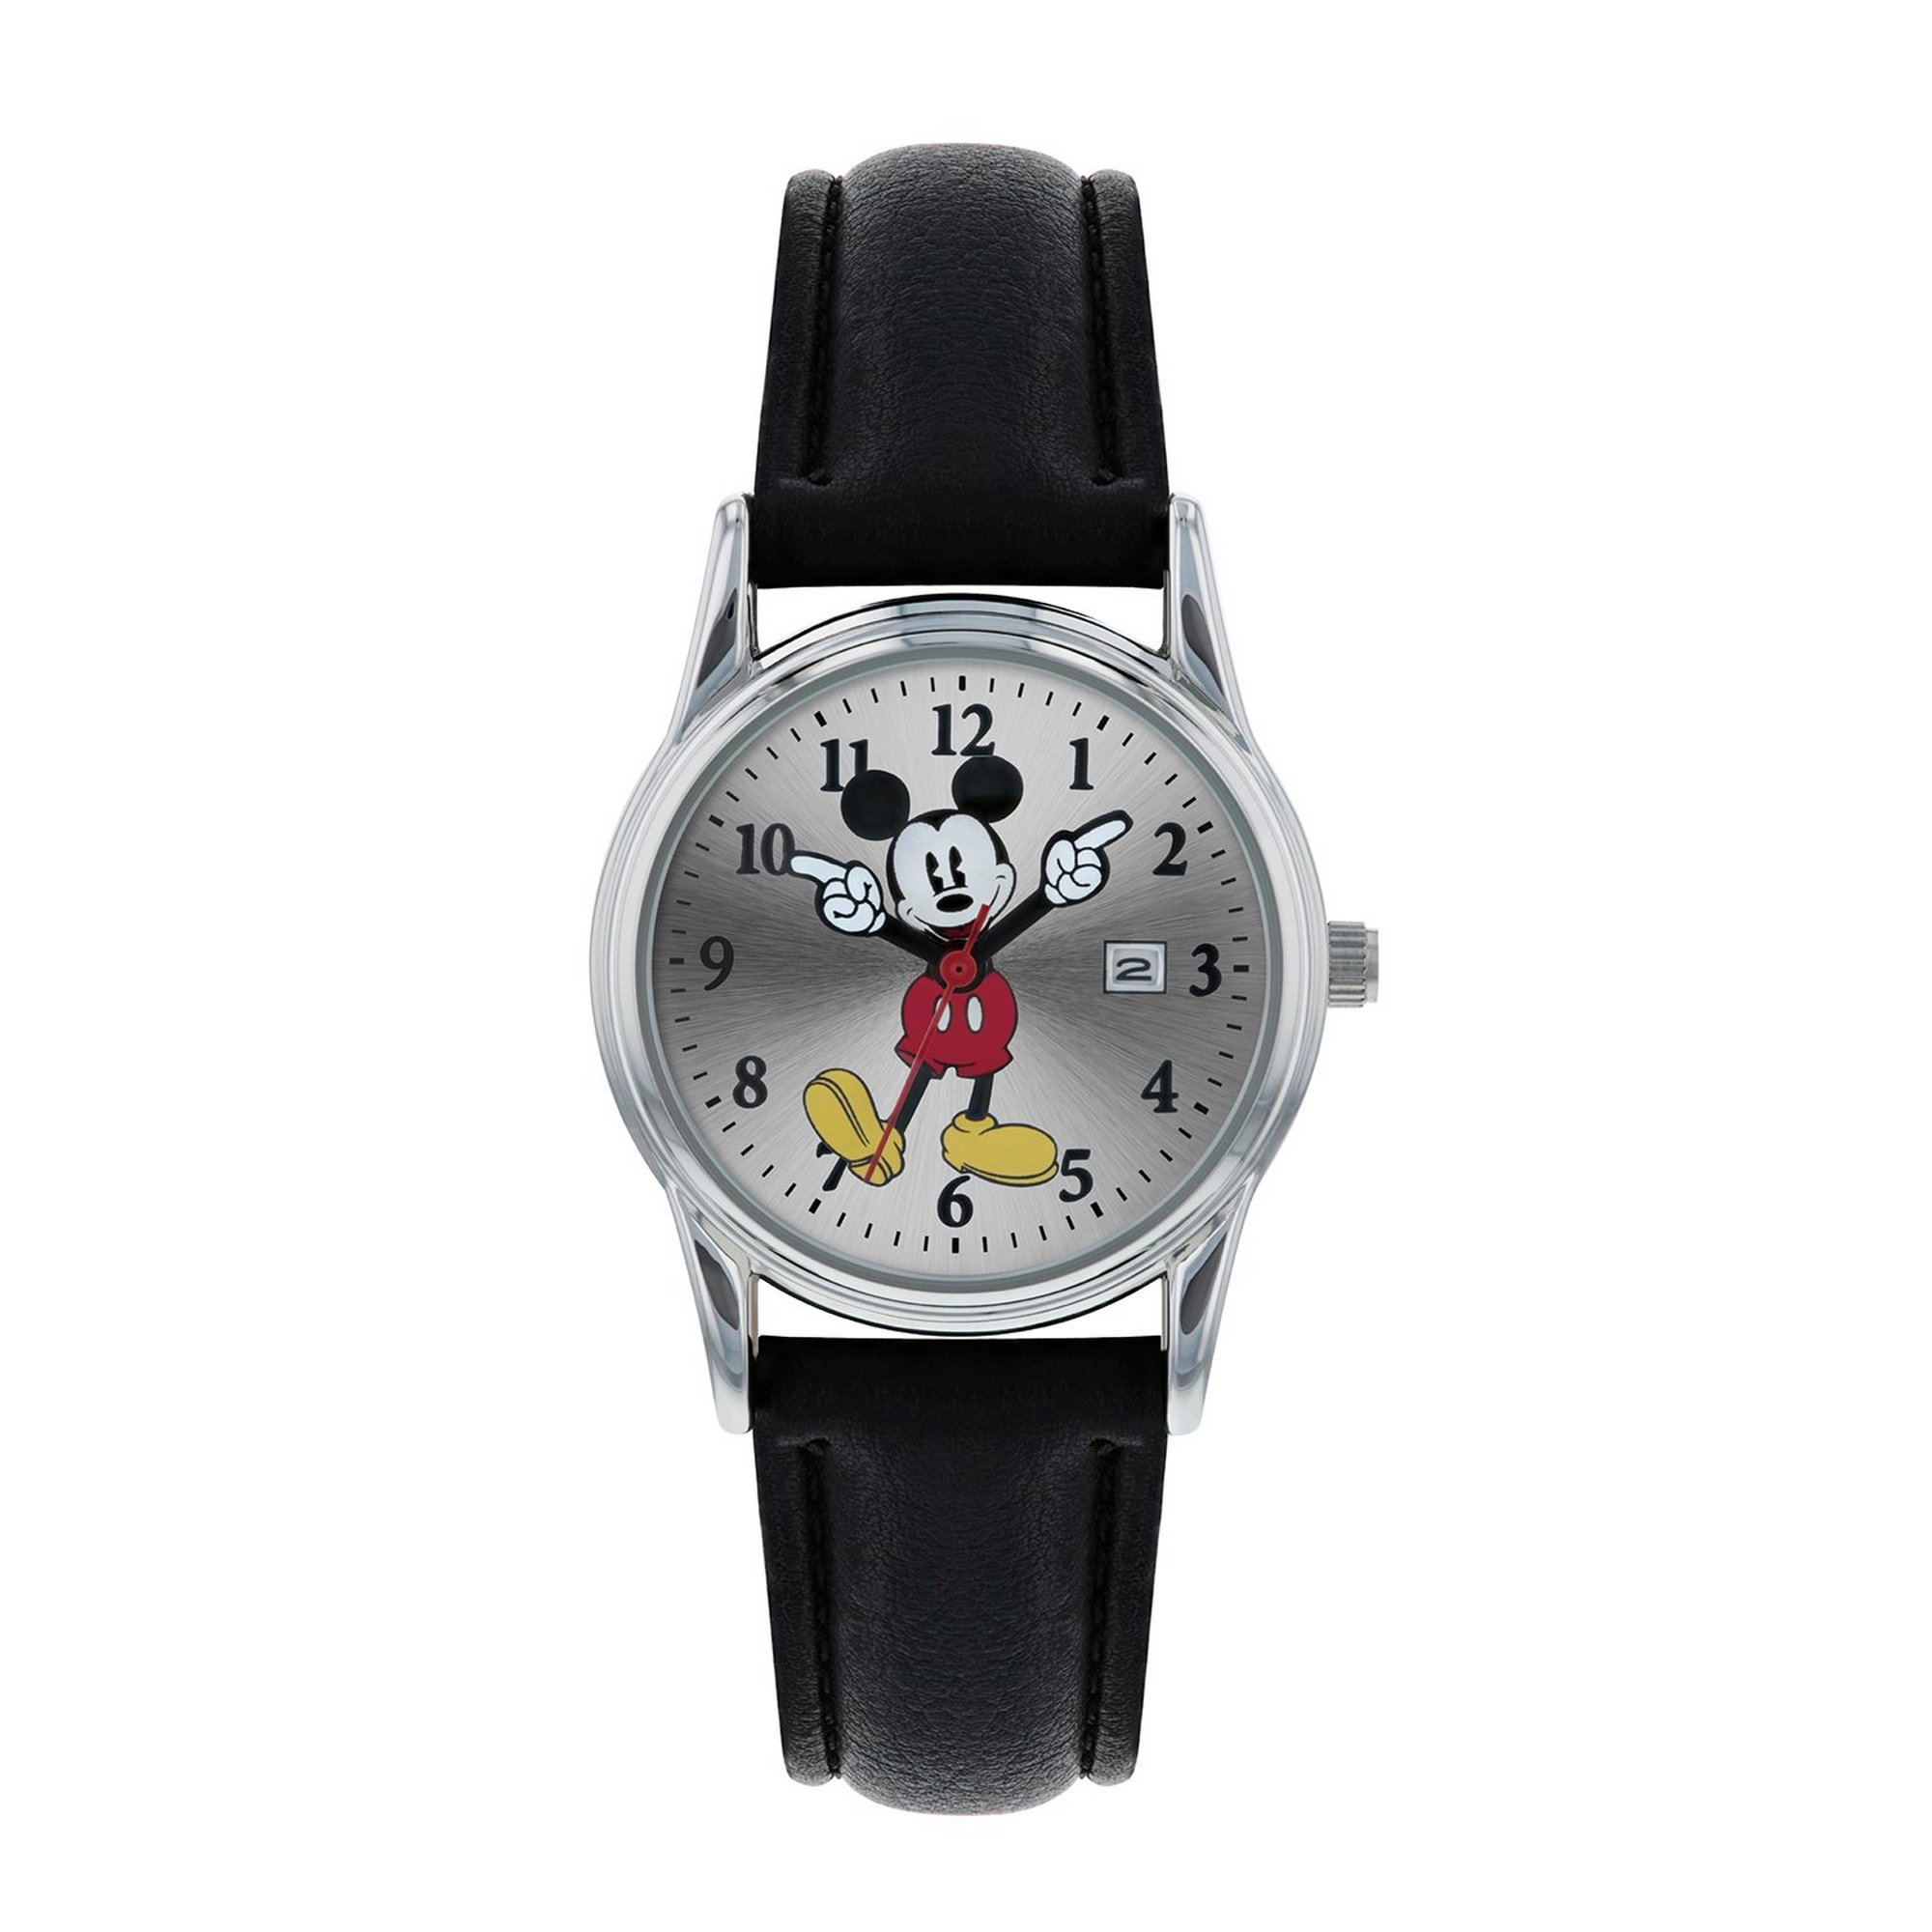 Image of Disney Mickey Mouse Black PU Strap Watch with Moving Hands